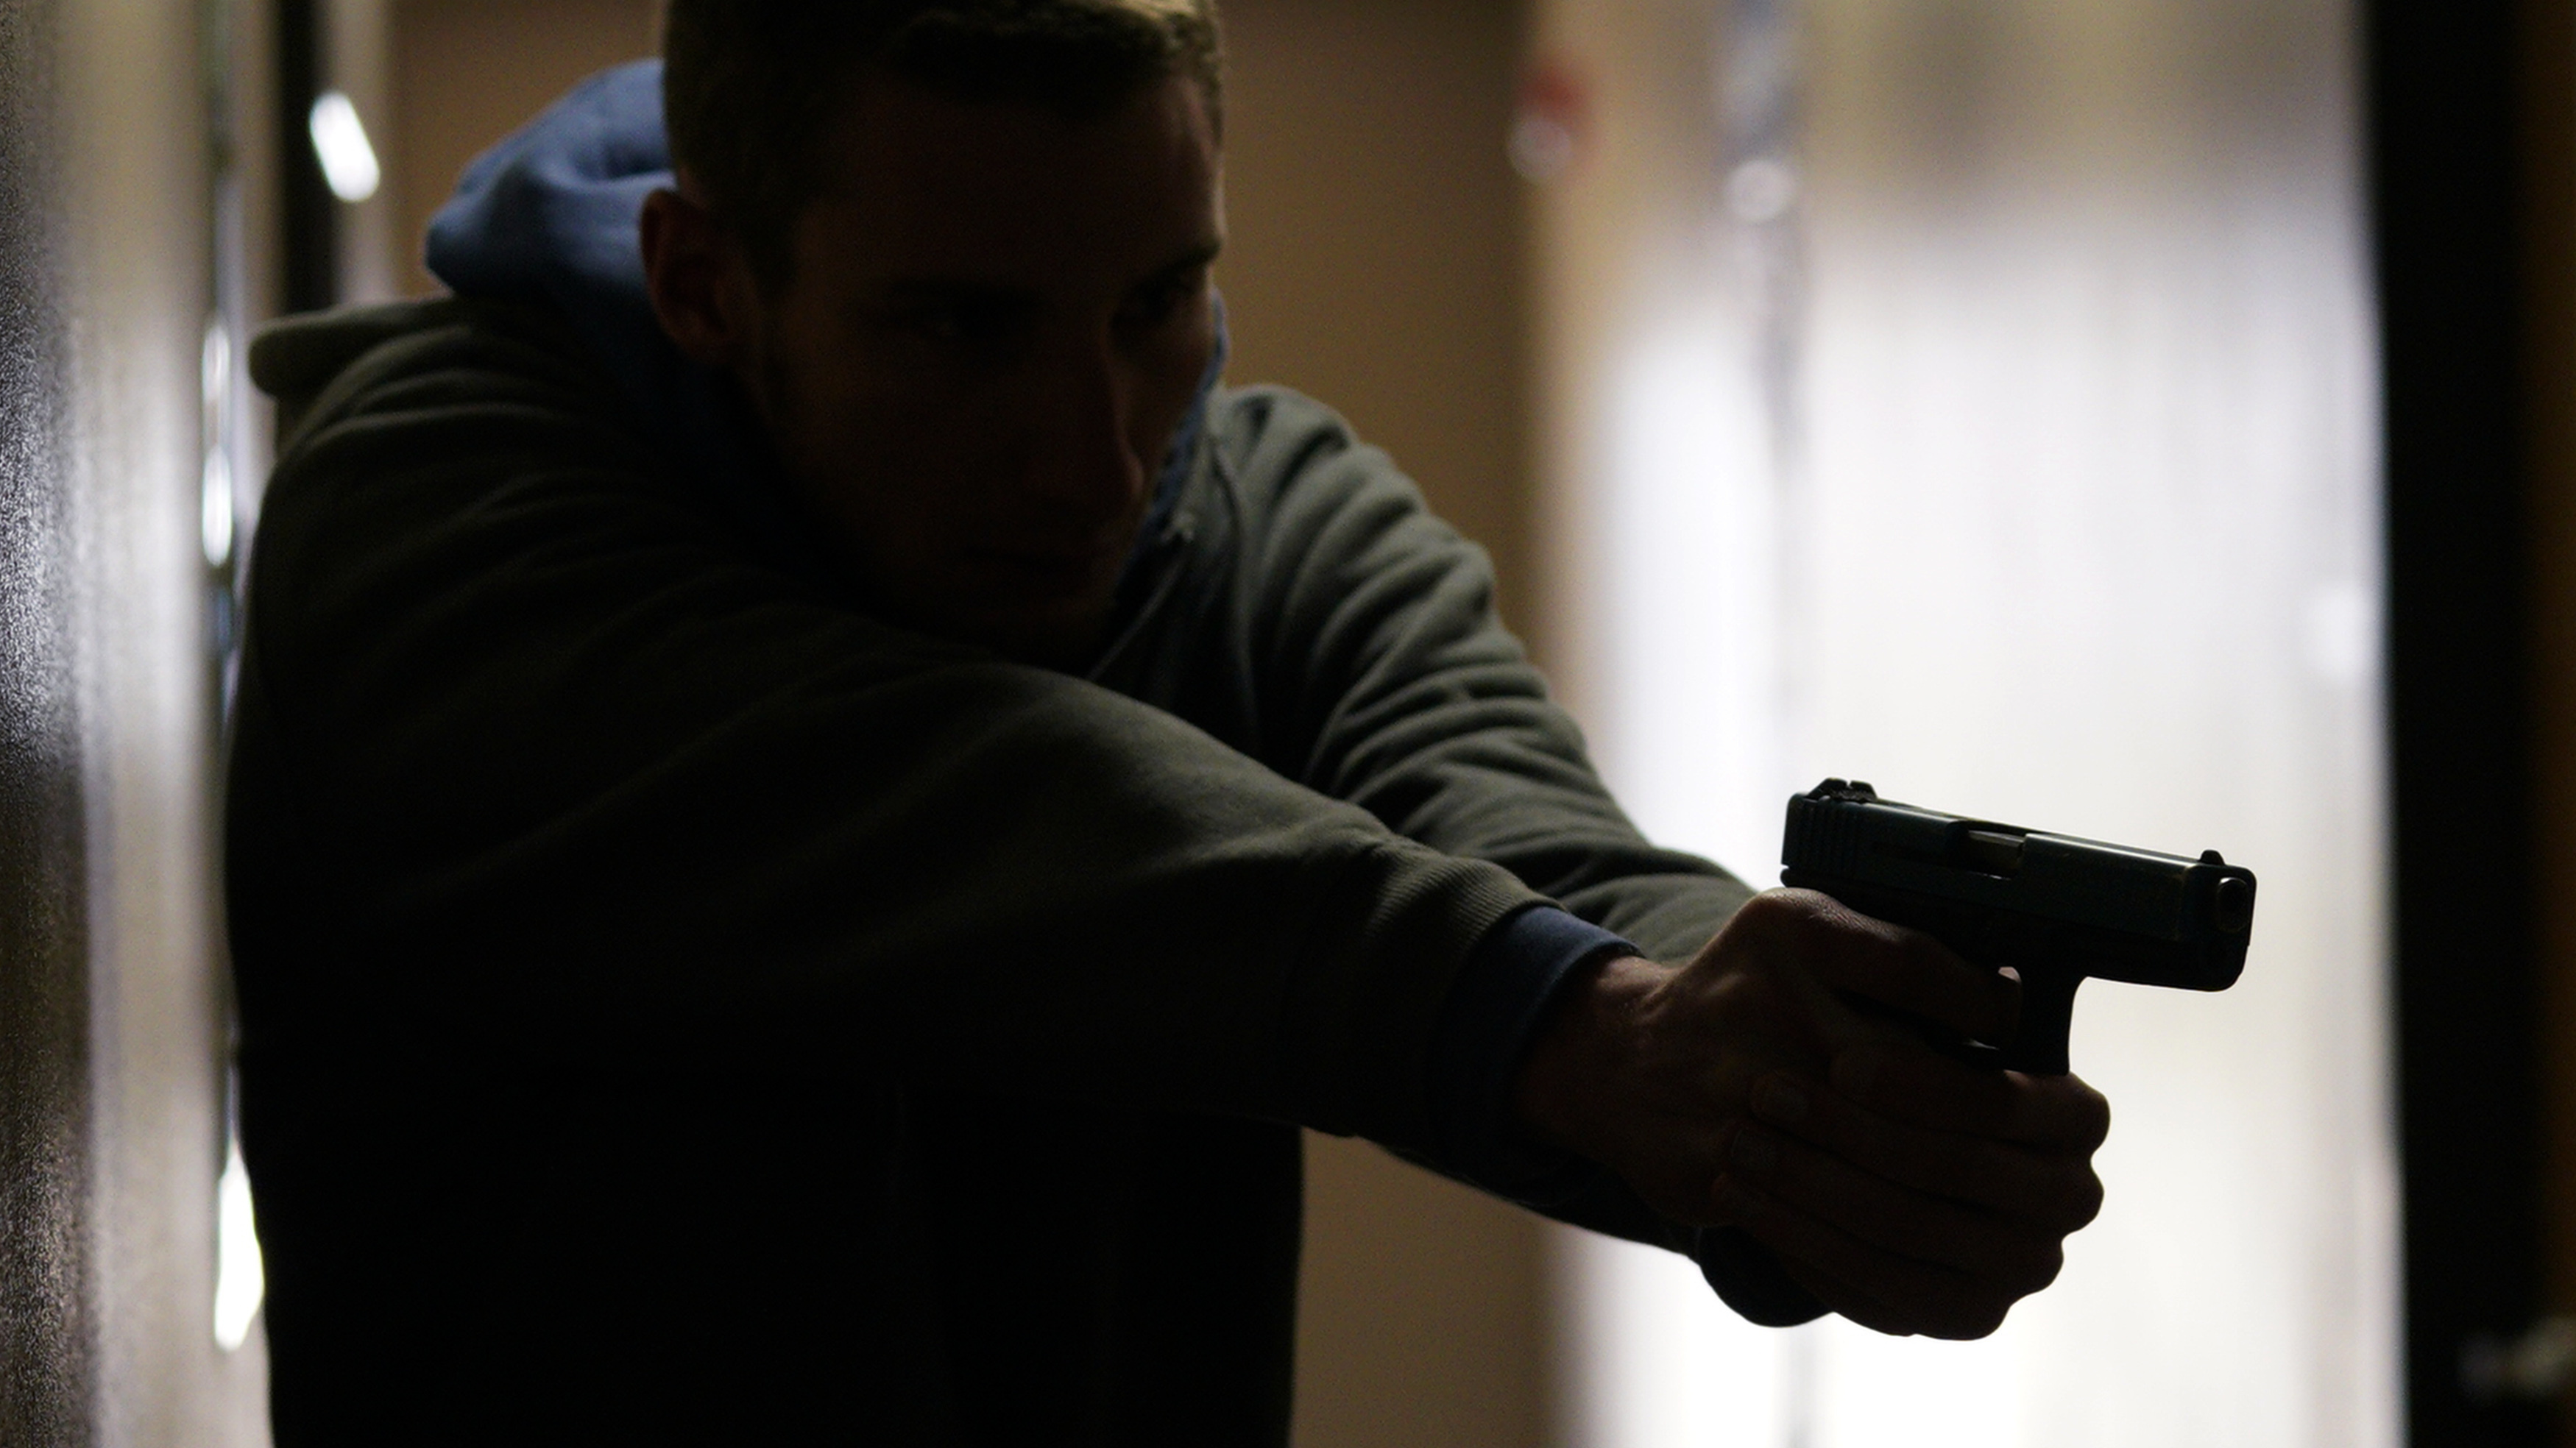 How Often Do People Use Guns In Self-Defense?